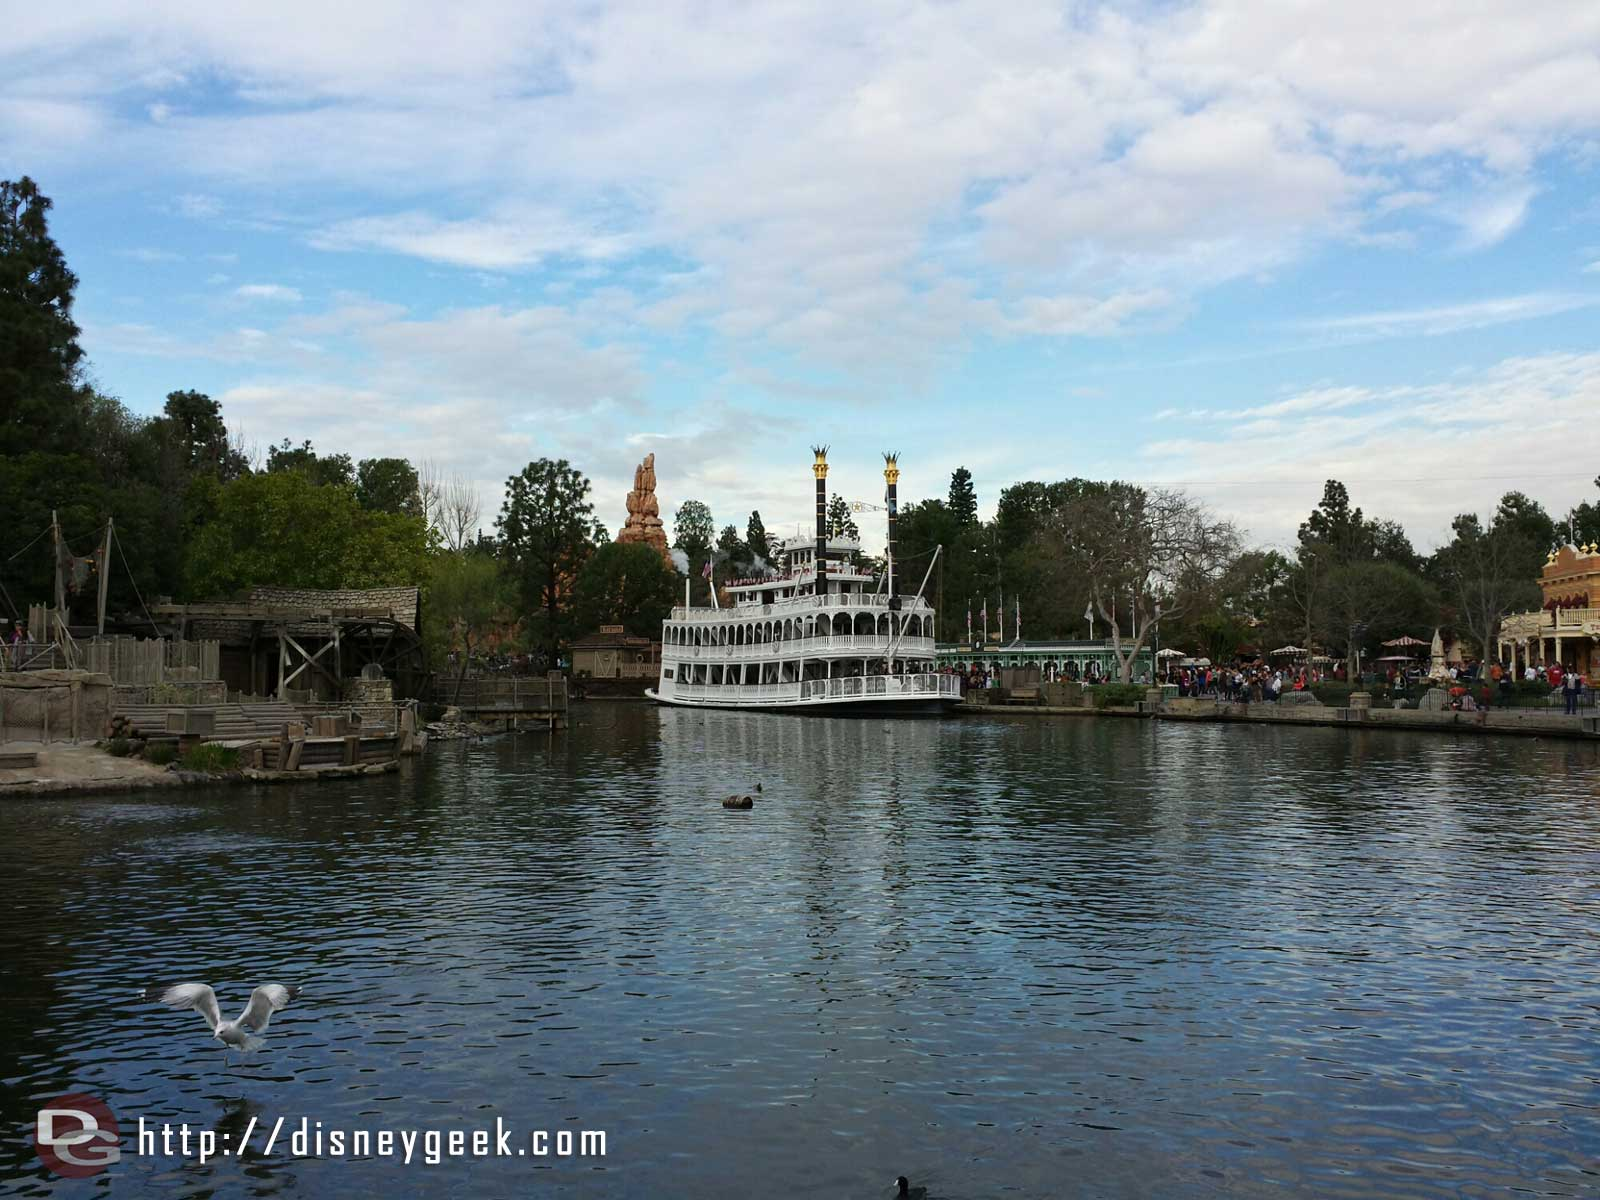 The Mark Twain on the Rivers of America #Disneyland